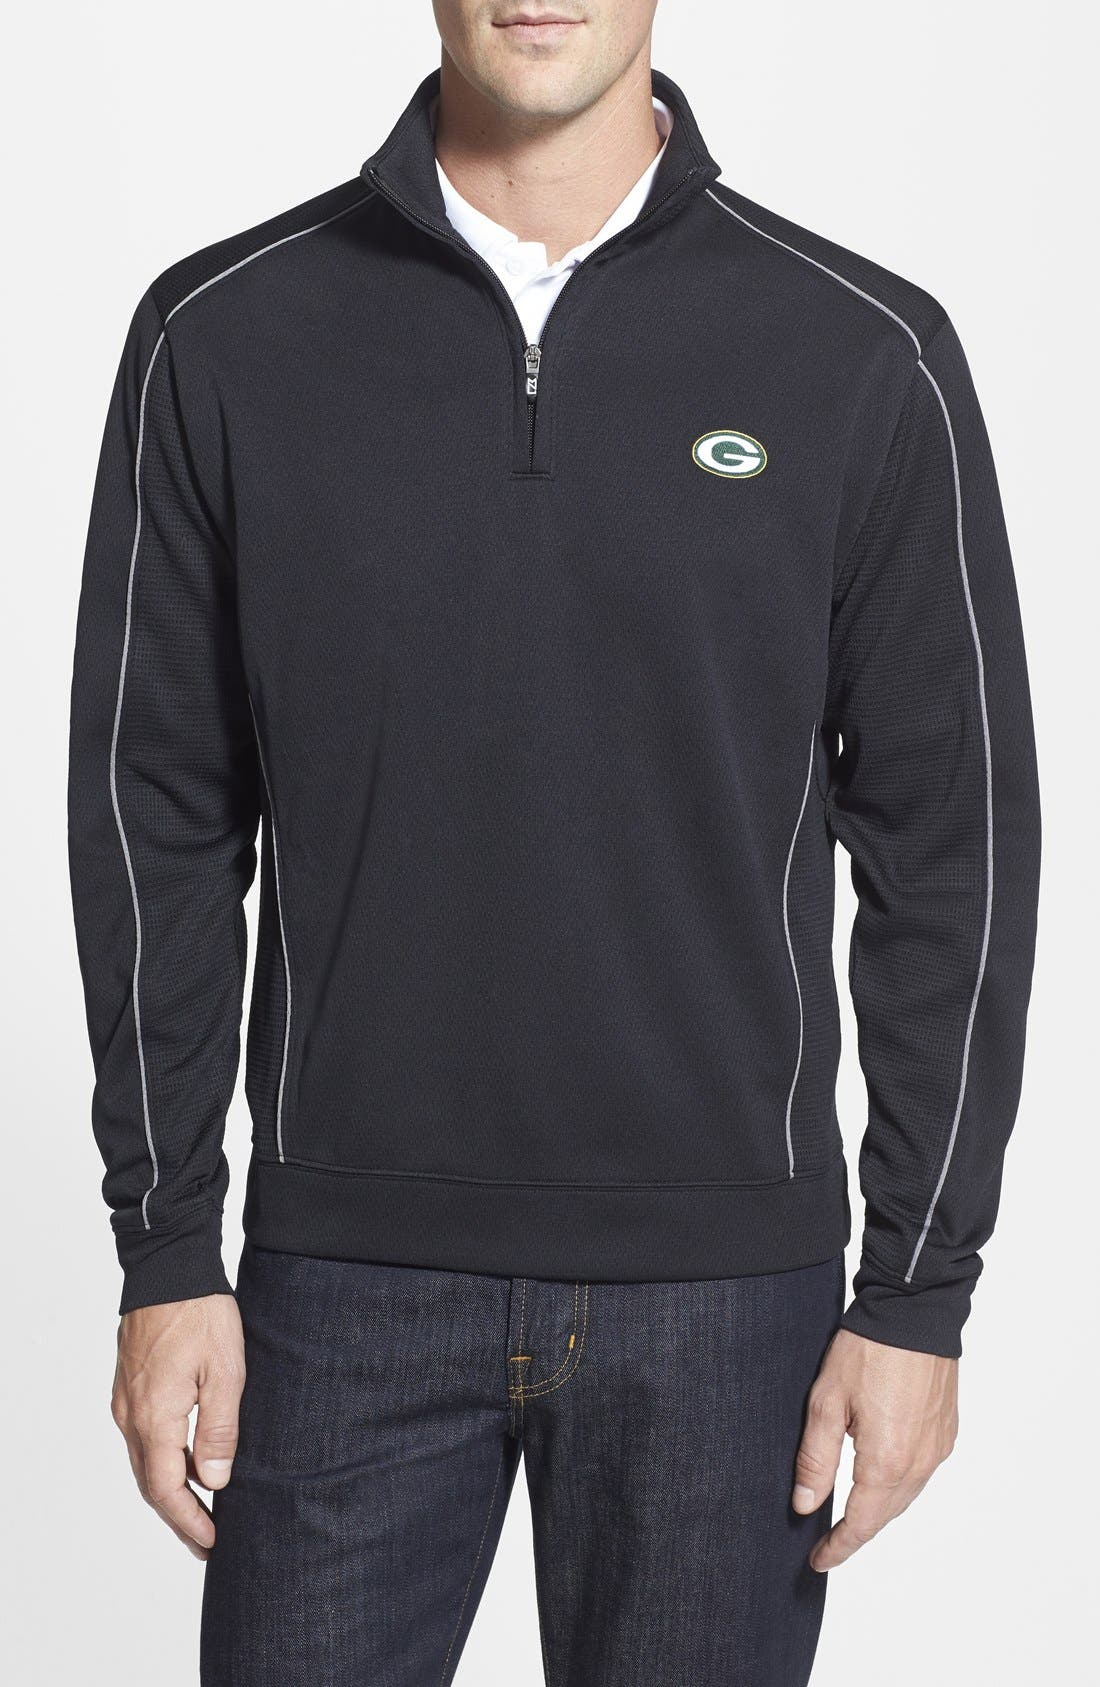 Cutter & Buck 'Green Bay Packers - Edge' DryTec Moisture Wicking Half Zip Pullover (Big & Tall)